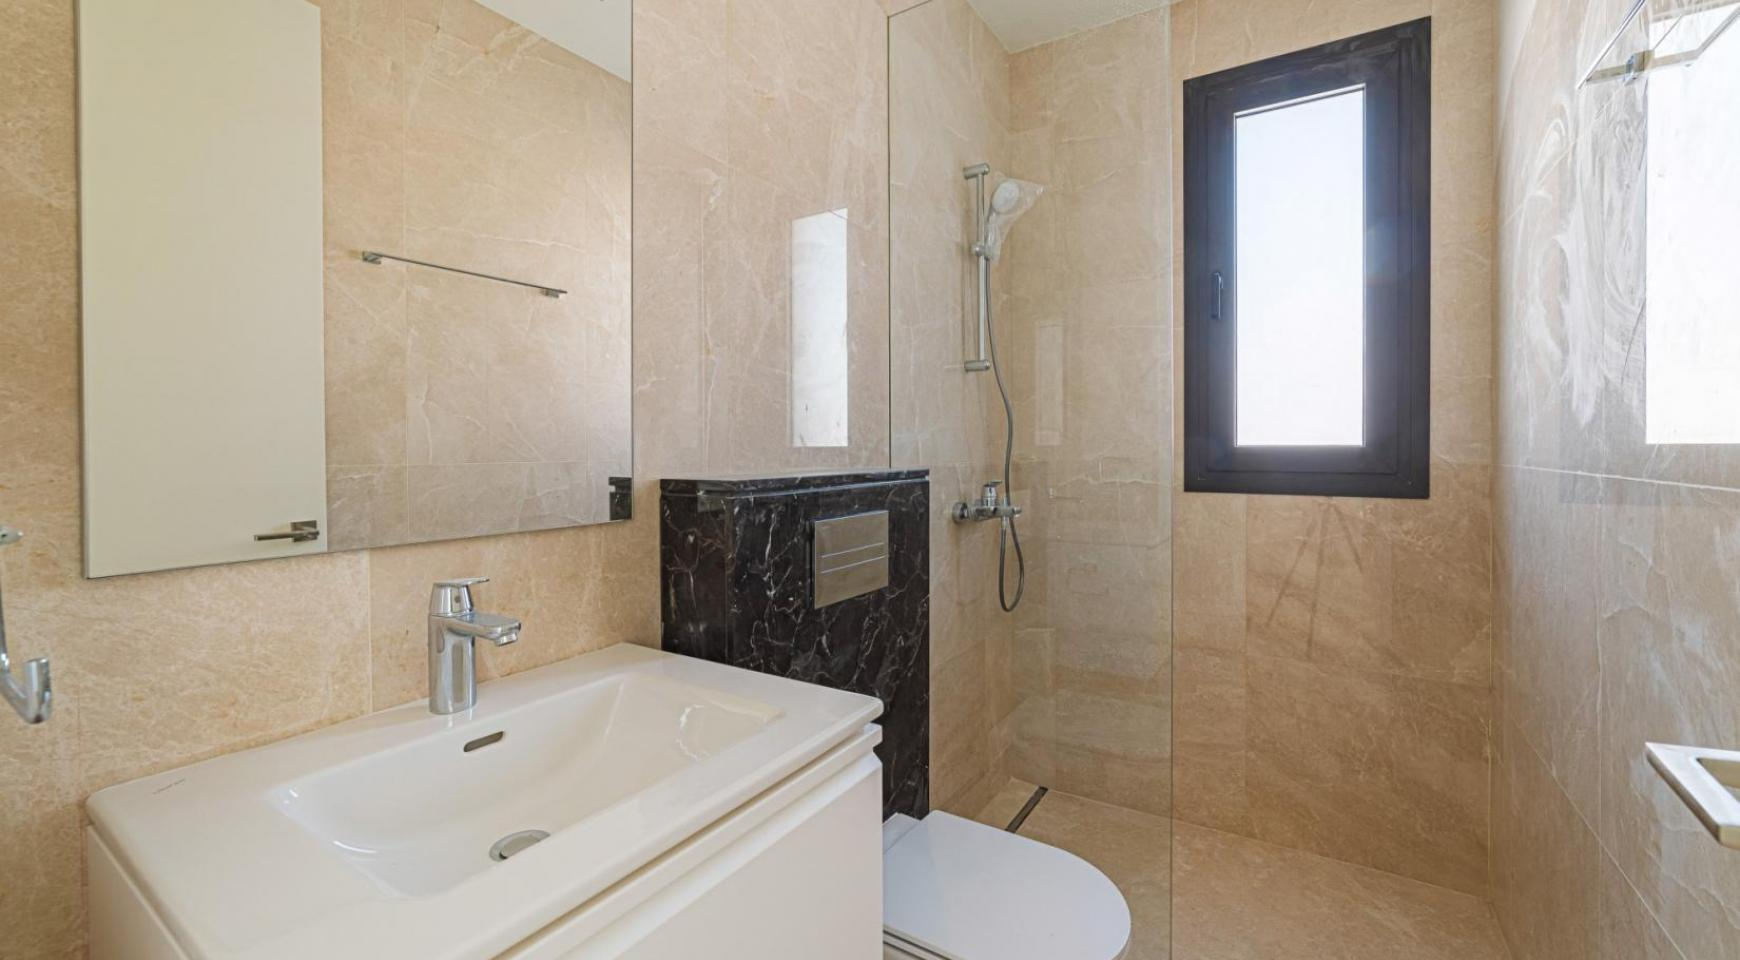 Hortensia Residence, Apt. 301. 2 Bedroom Apartment within a New Complex near the Sea  - 45